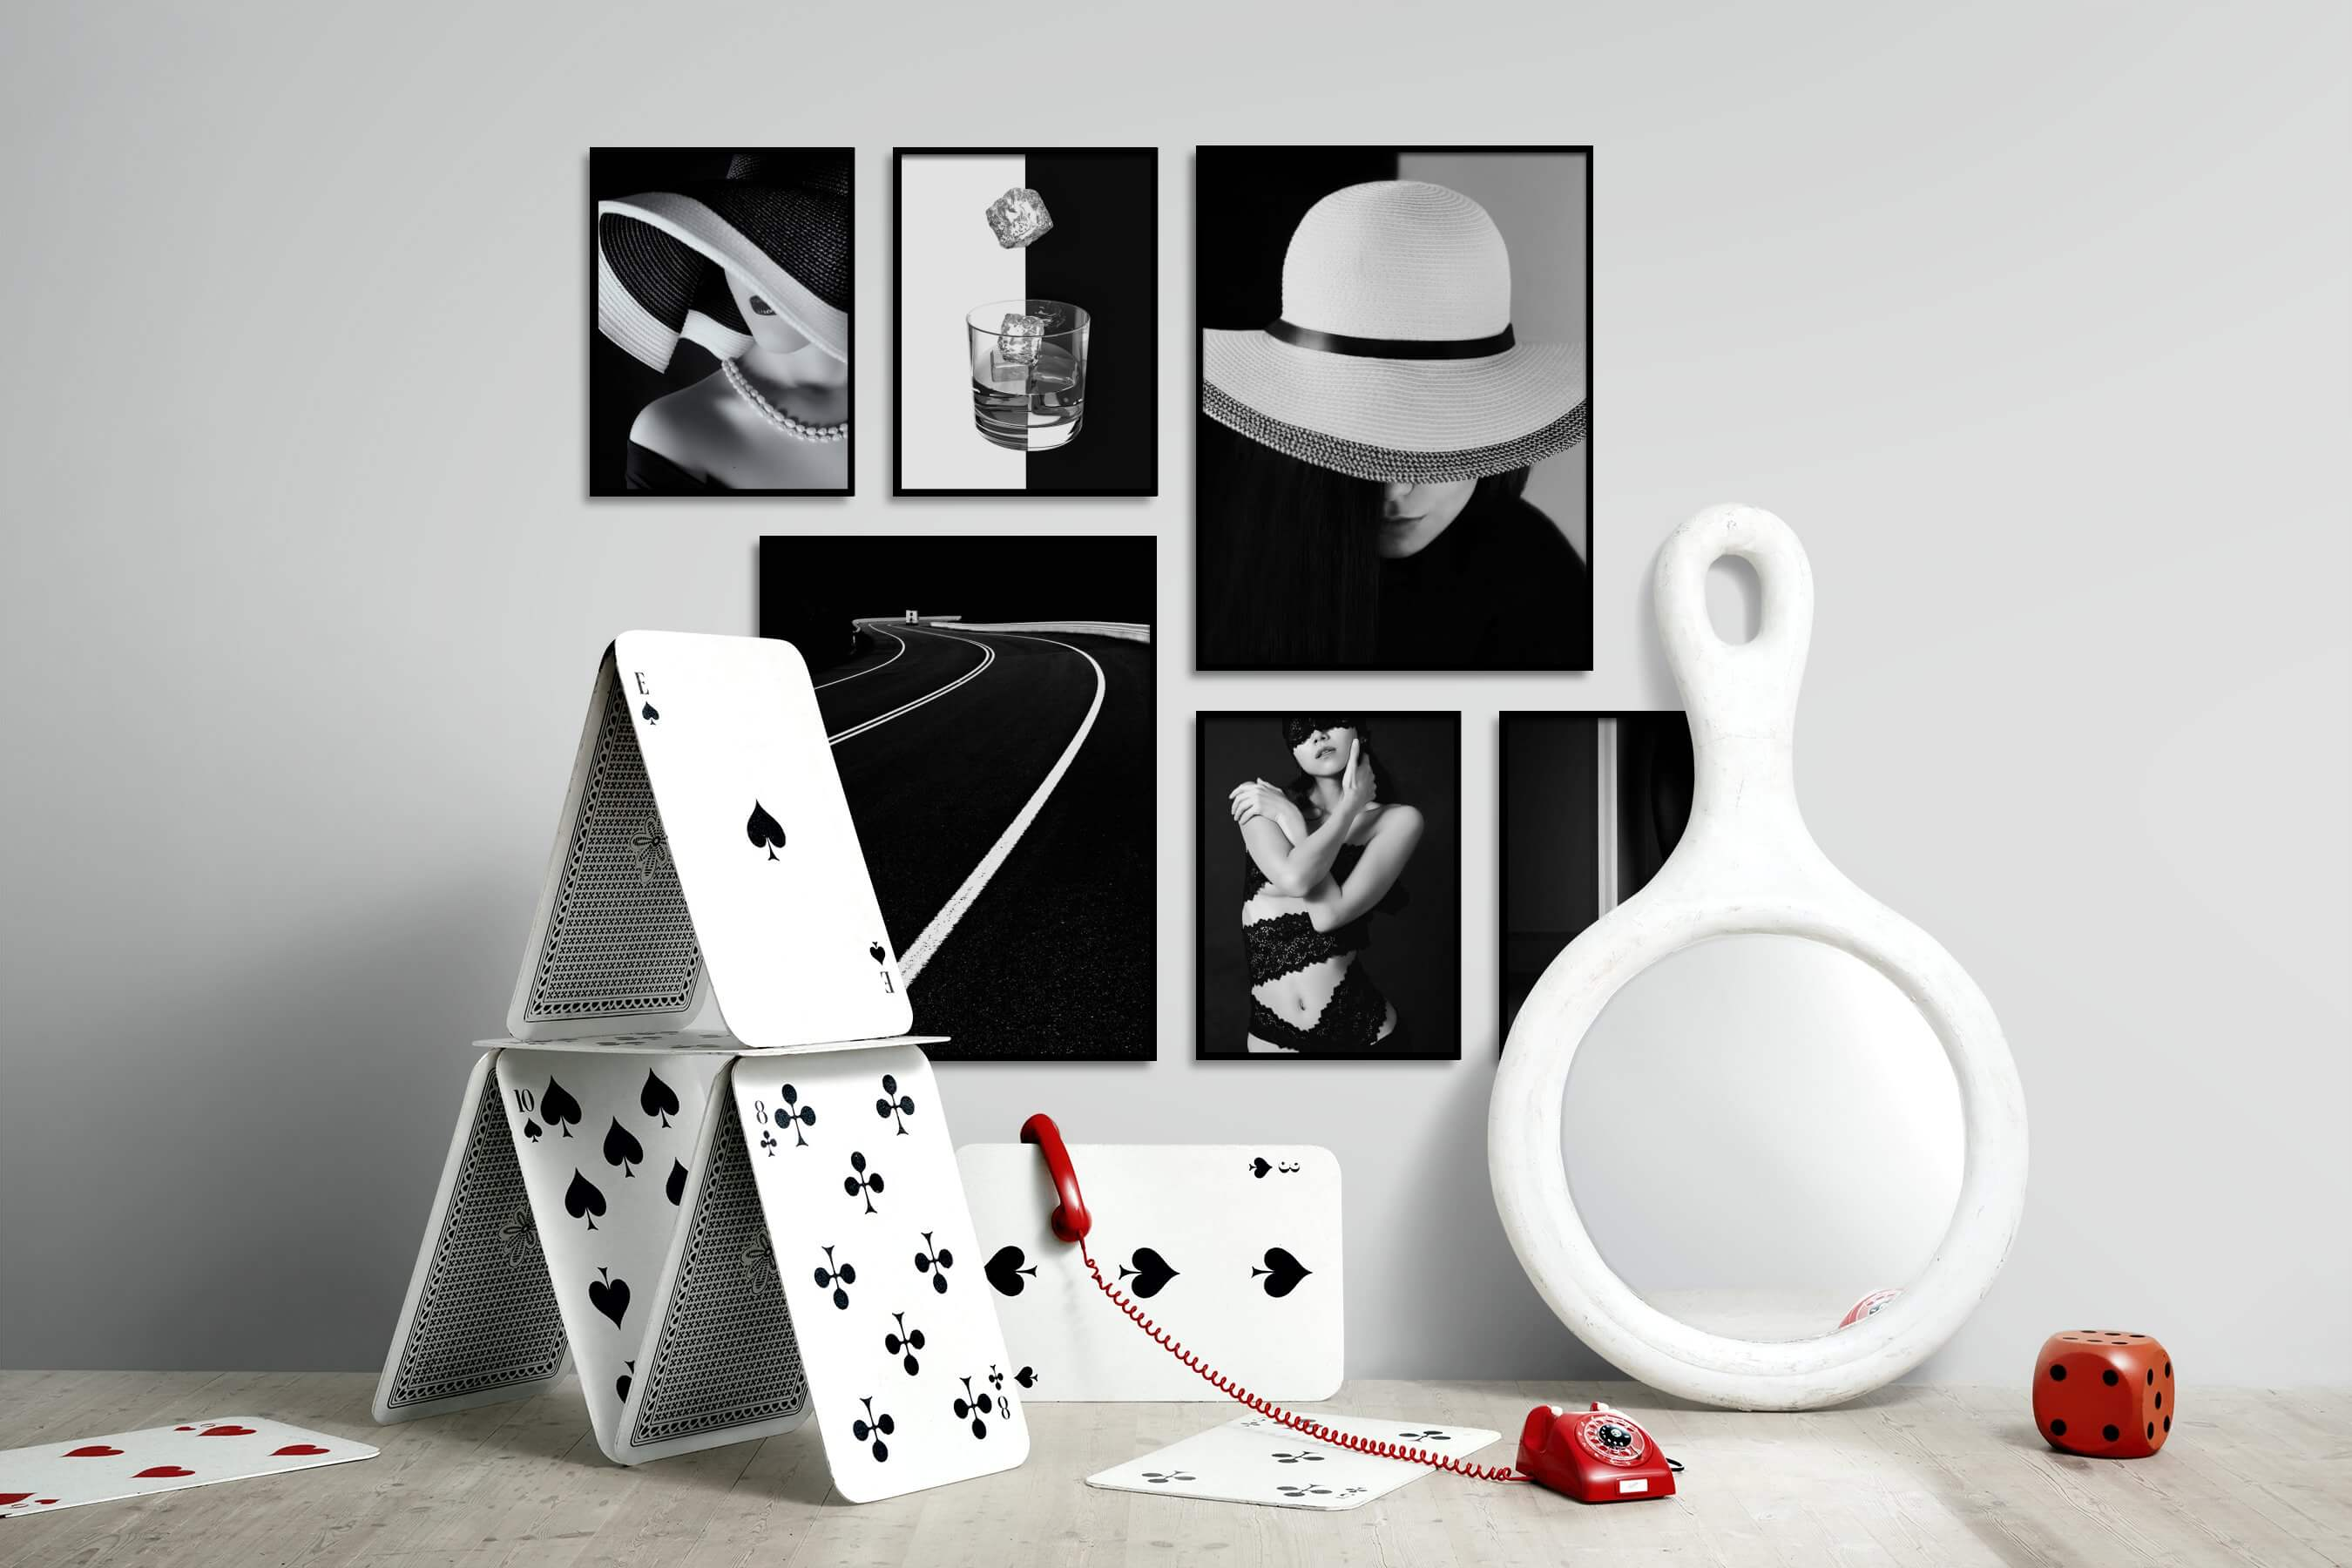 Gallery wall idea with six framed pictures arranged on a wall depicting Fashion & Beauty, Black & White, For the Moderate, Vintage, Dark Tones, and For the Minimalist